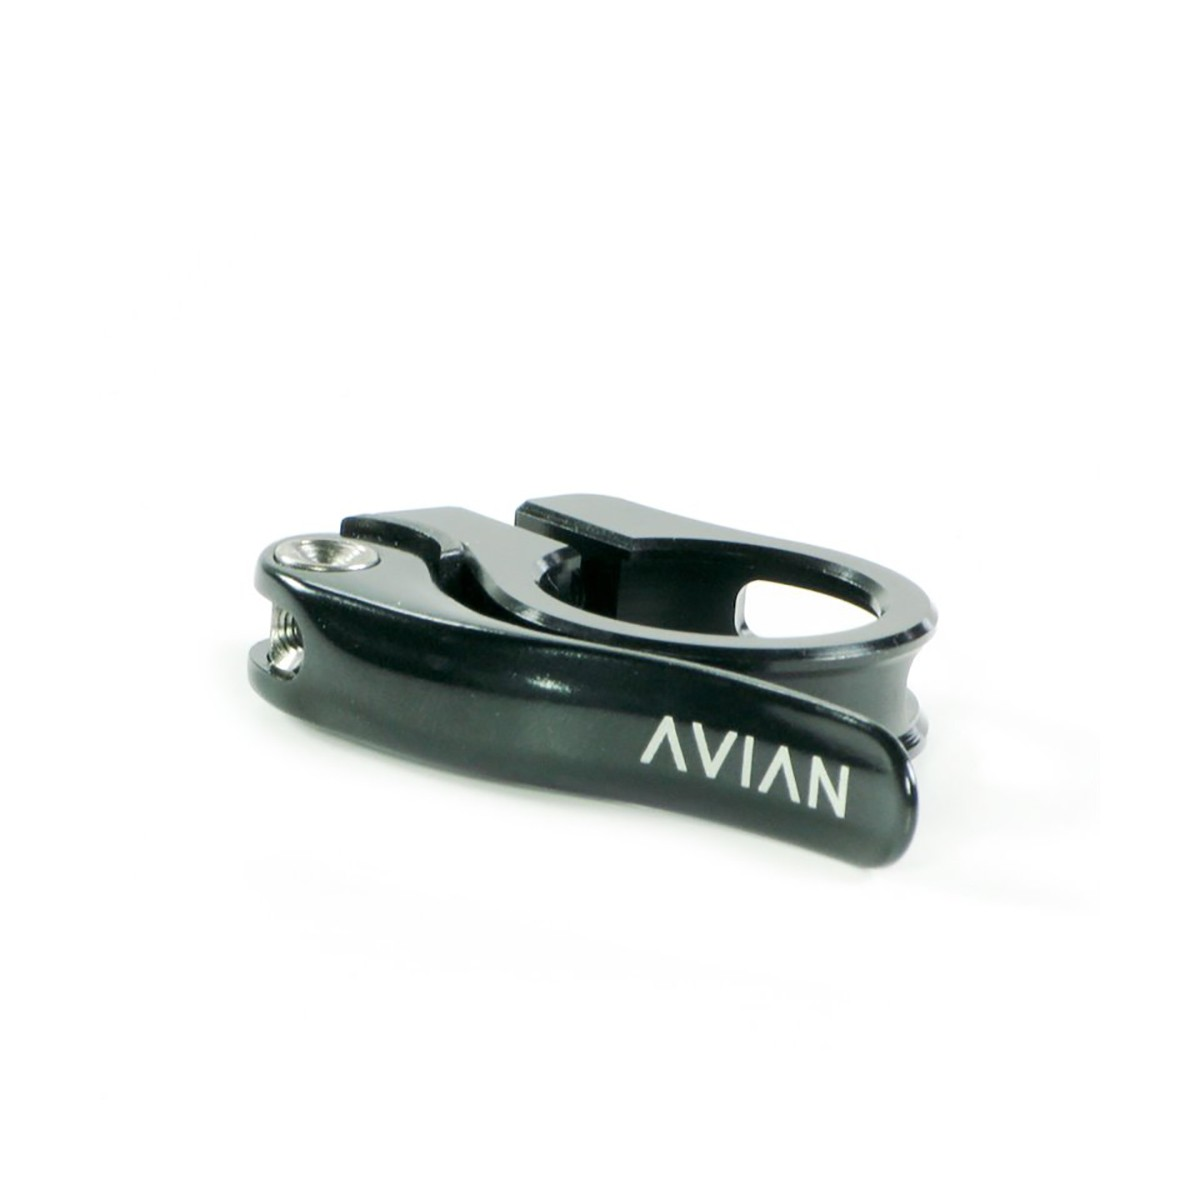 AVIAN AVIARA QUICK RELEASE SEAT CLAMP 25.4MM